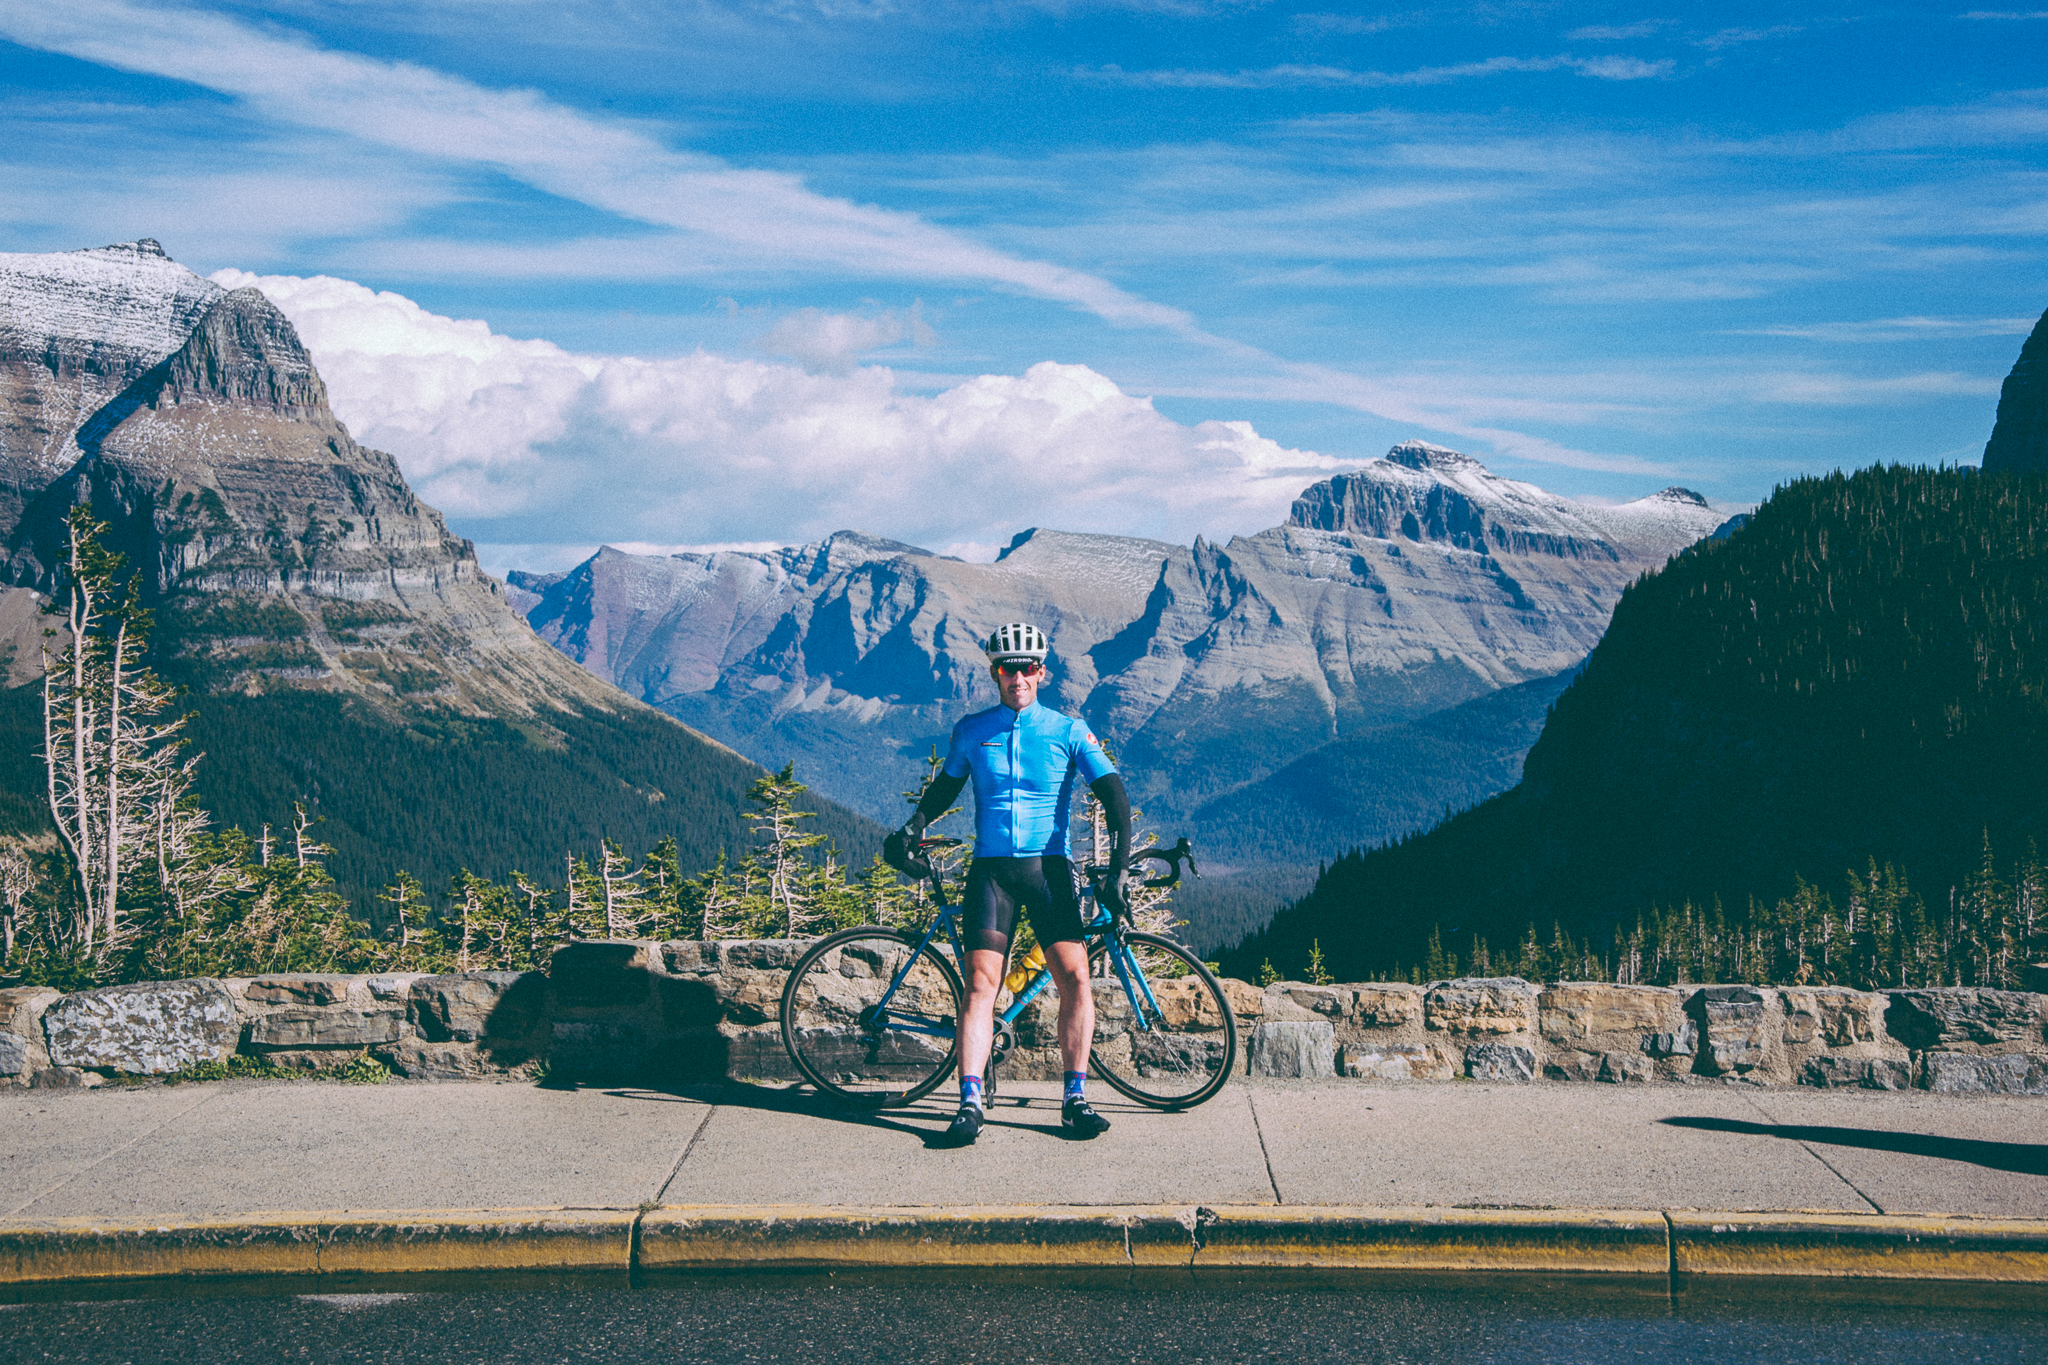 glacier-national-park-cycling-fairdale-3005